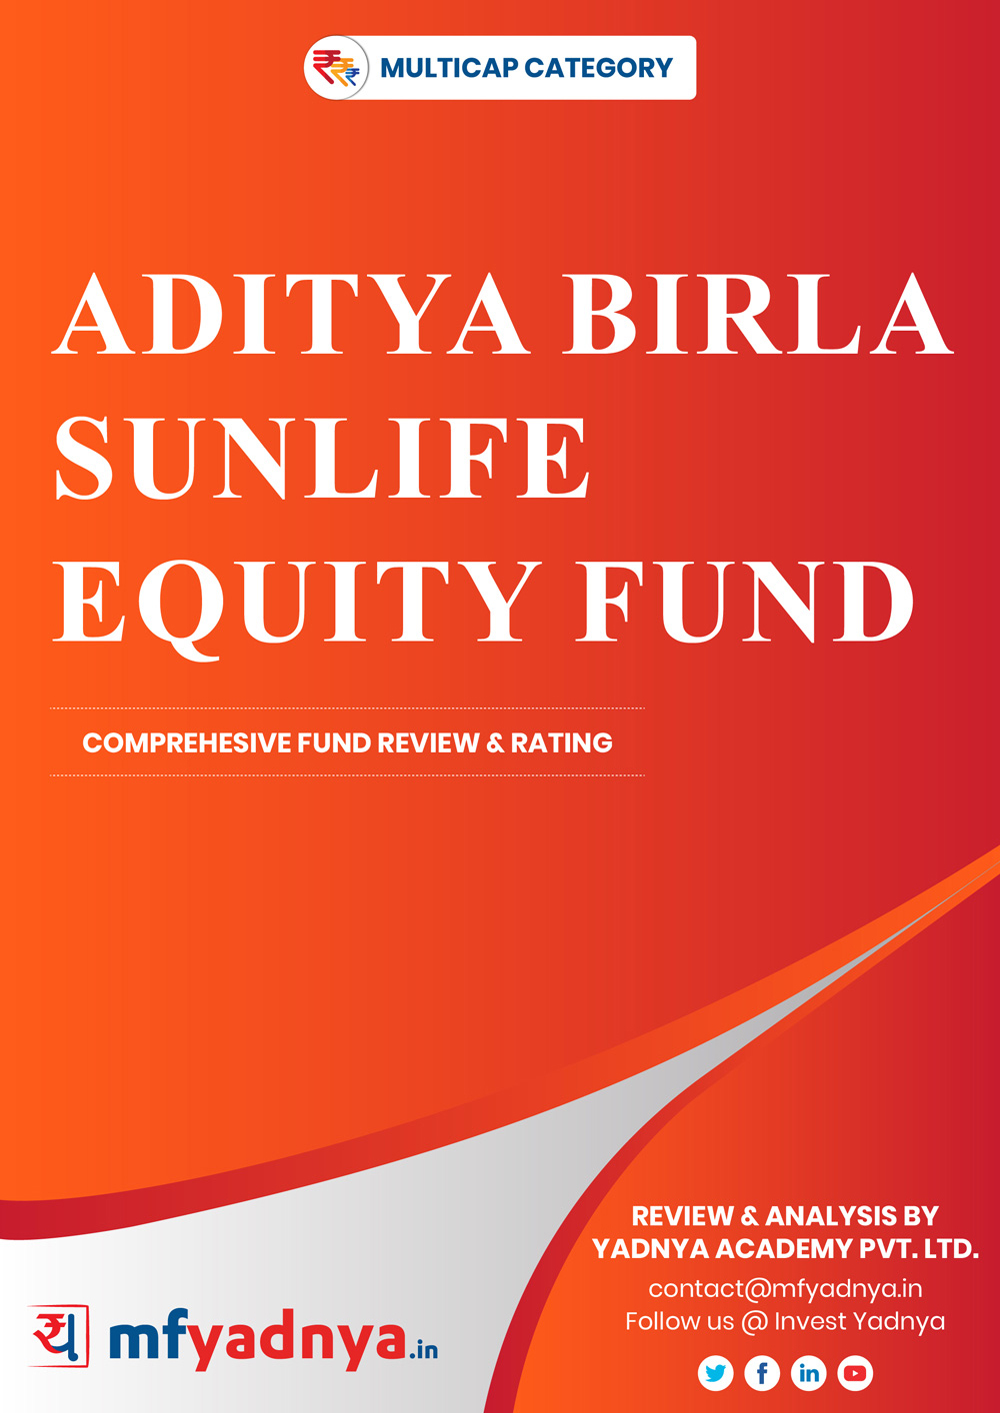 Multi-Cap Category Review - Aditya Birla Sunlife Equity Fund. Most Comprehensive and detailed MF review based on Yadnya's proprietary methodology of Green, Yellow & Red Star. Detailed Analysis & Review based on July 31st, 2019 data.